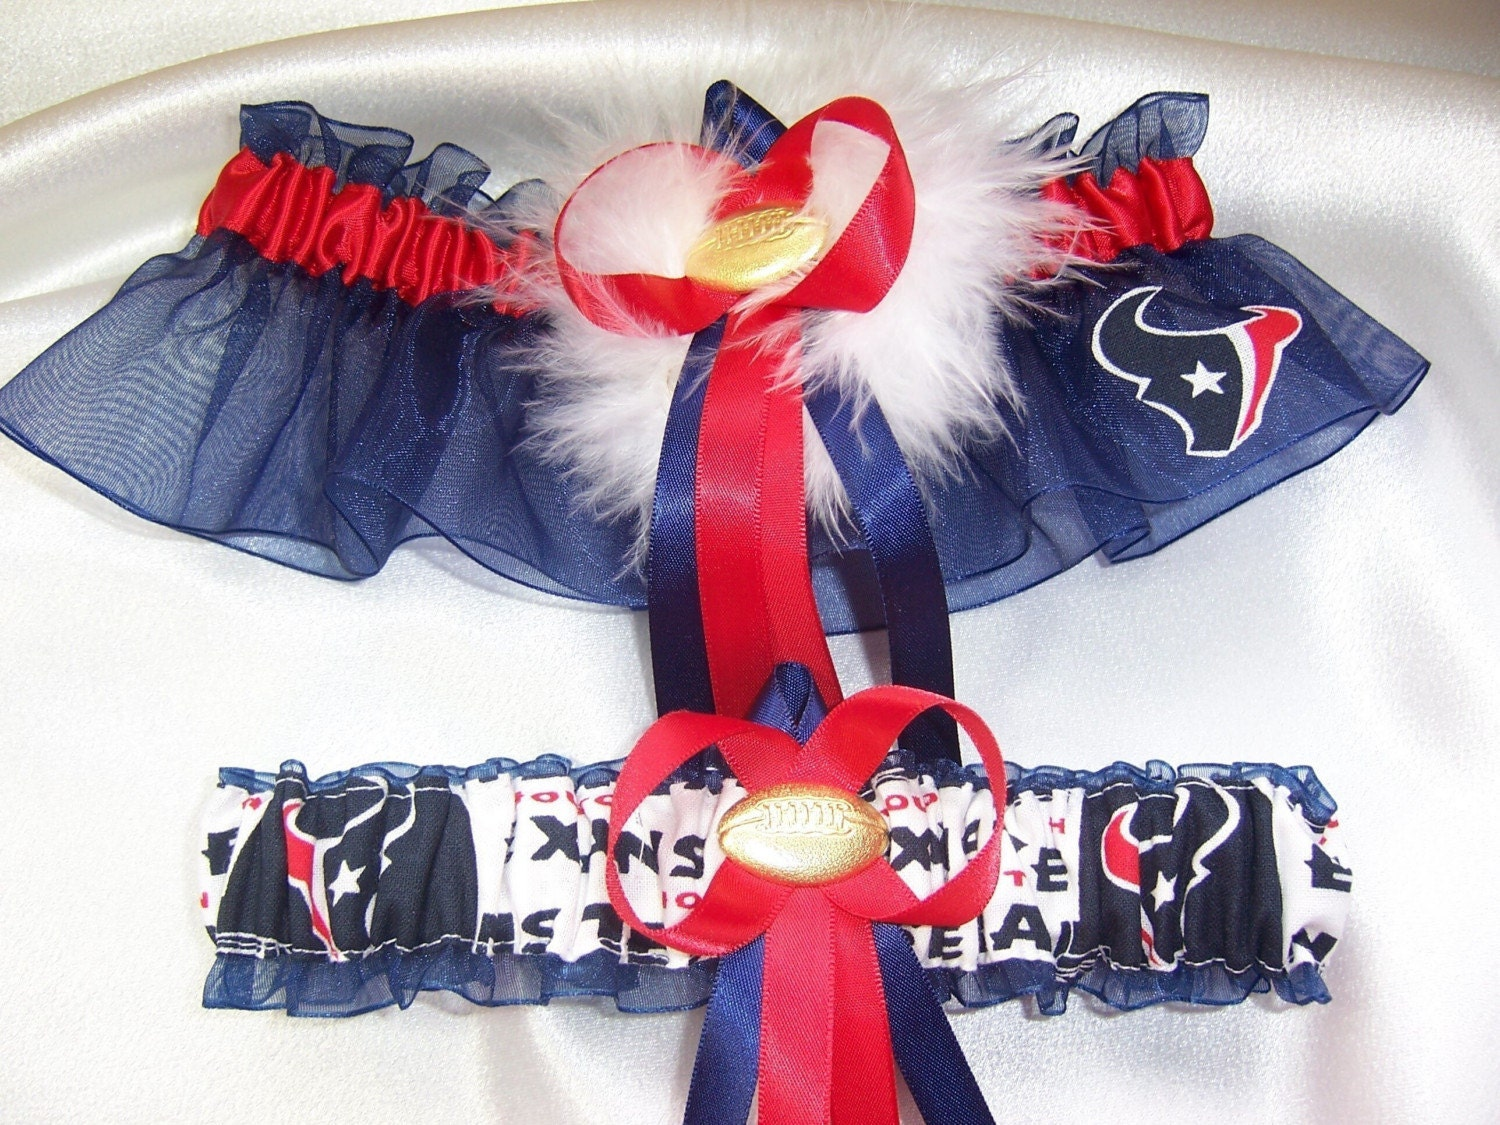 ... navy blue and red ribbons, a sexy marabou pouf, and a football charm.